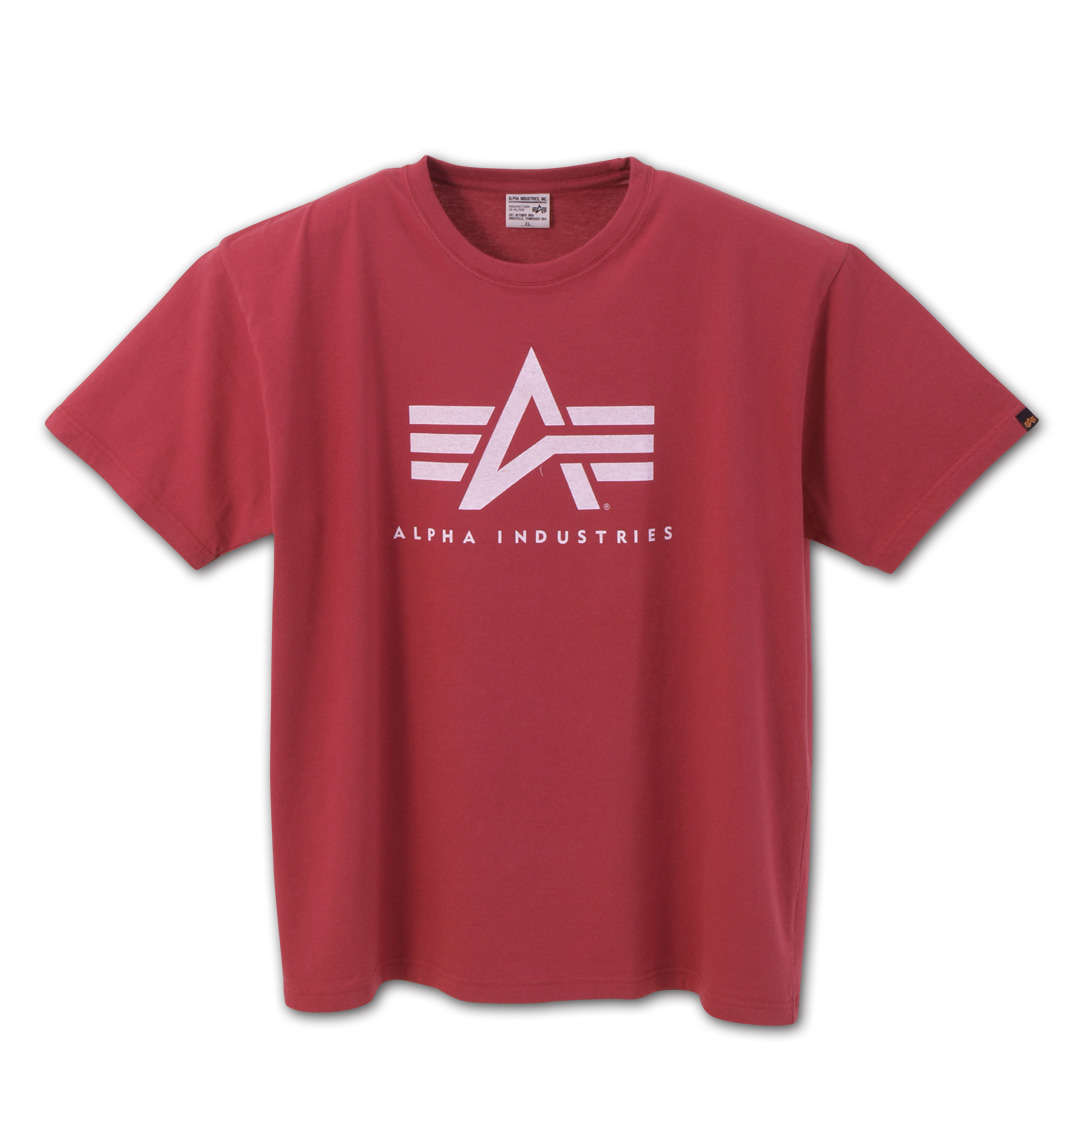 ALPHA INDUSTRIESAマーク半袖Tシャツ